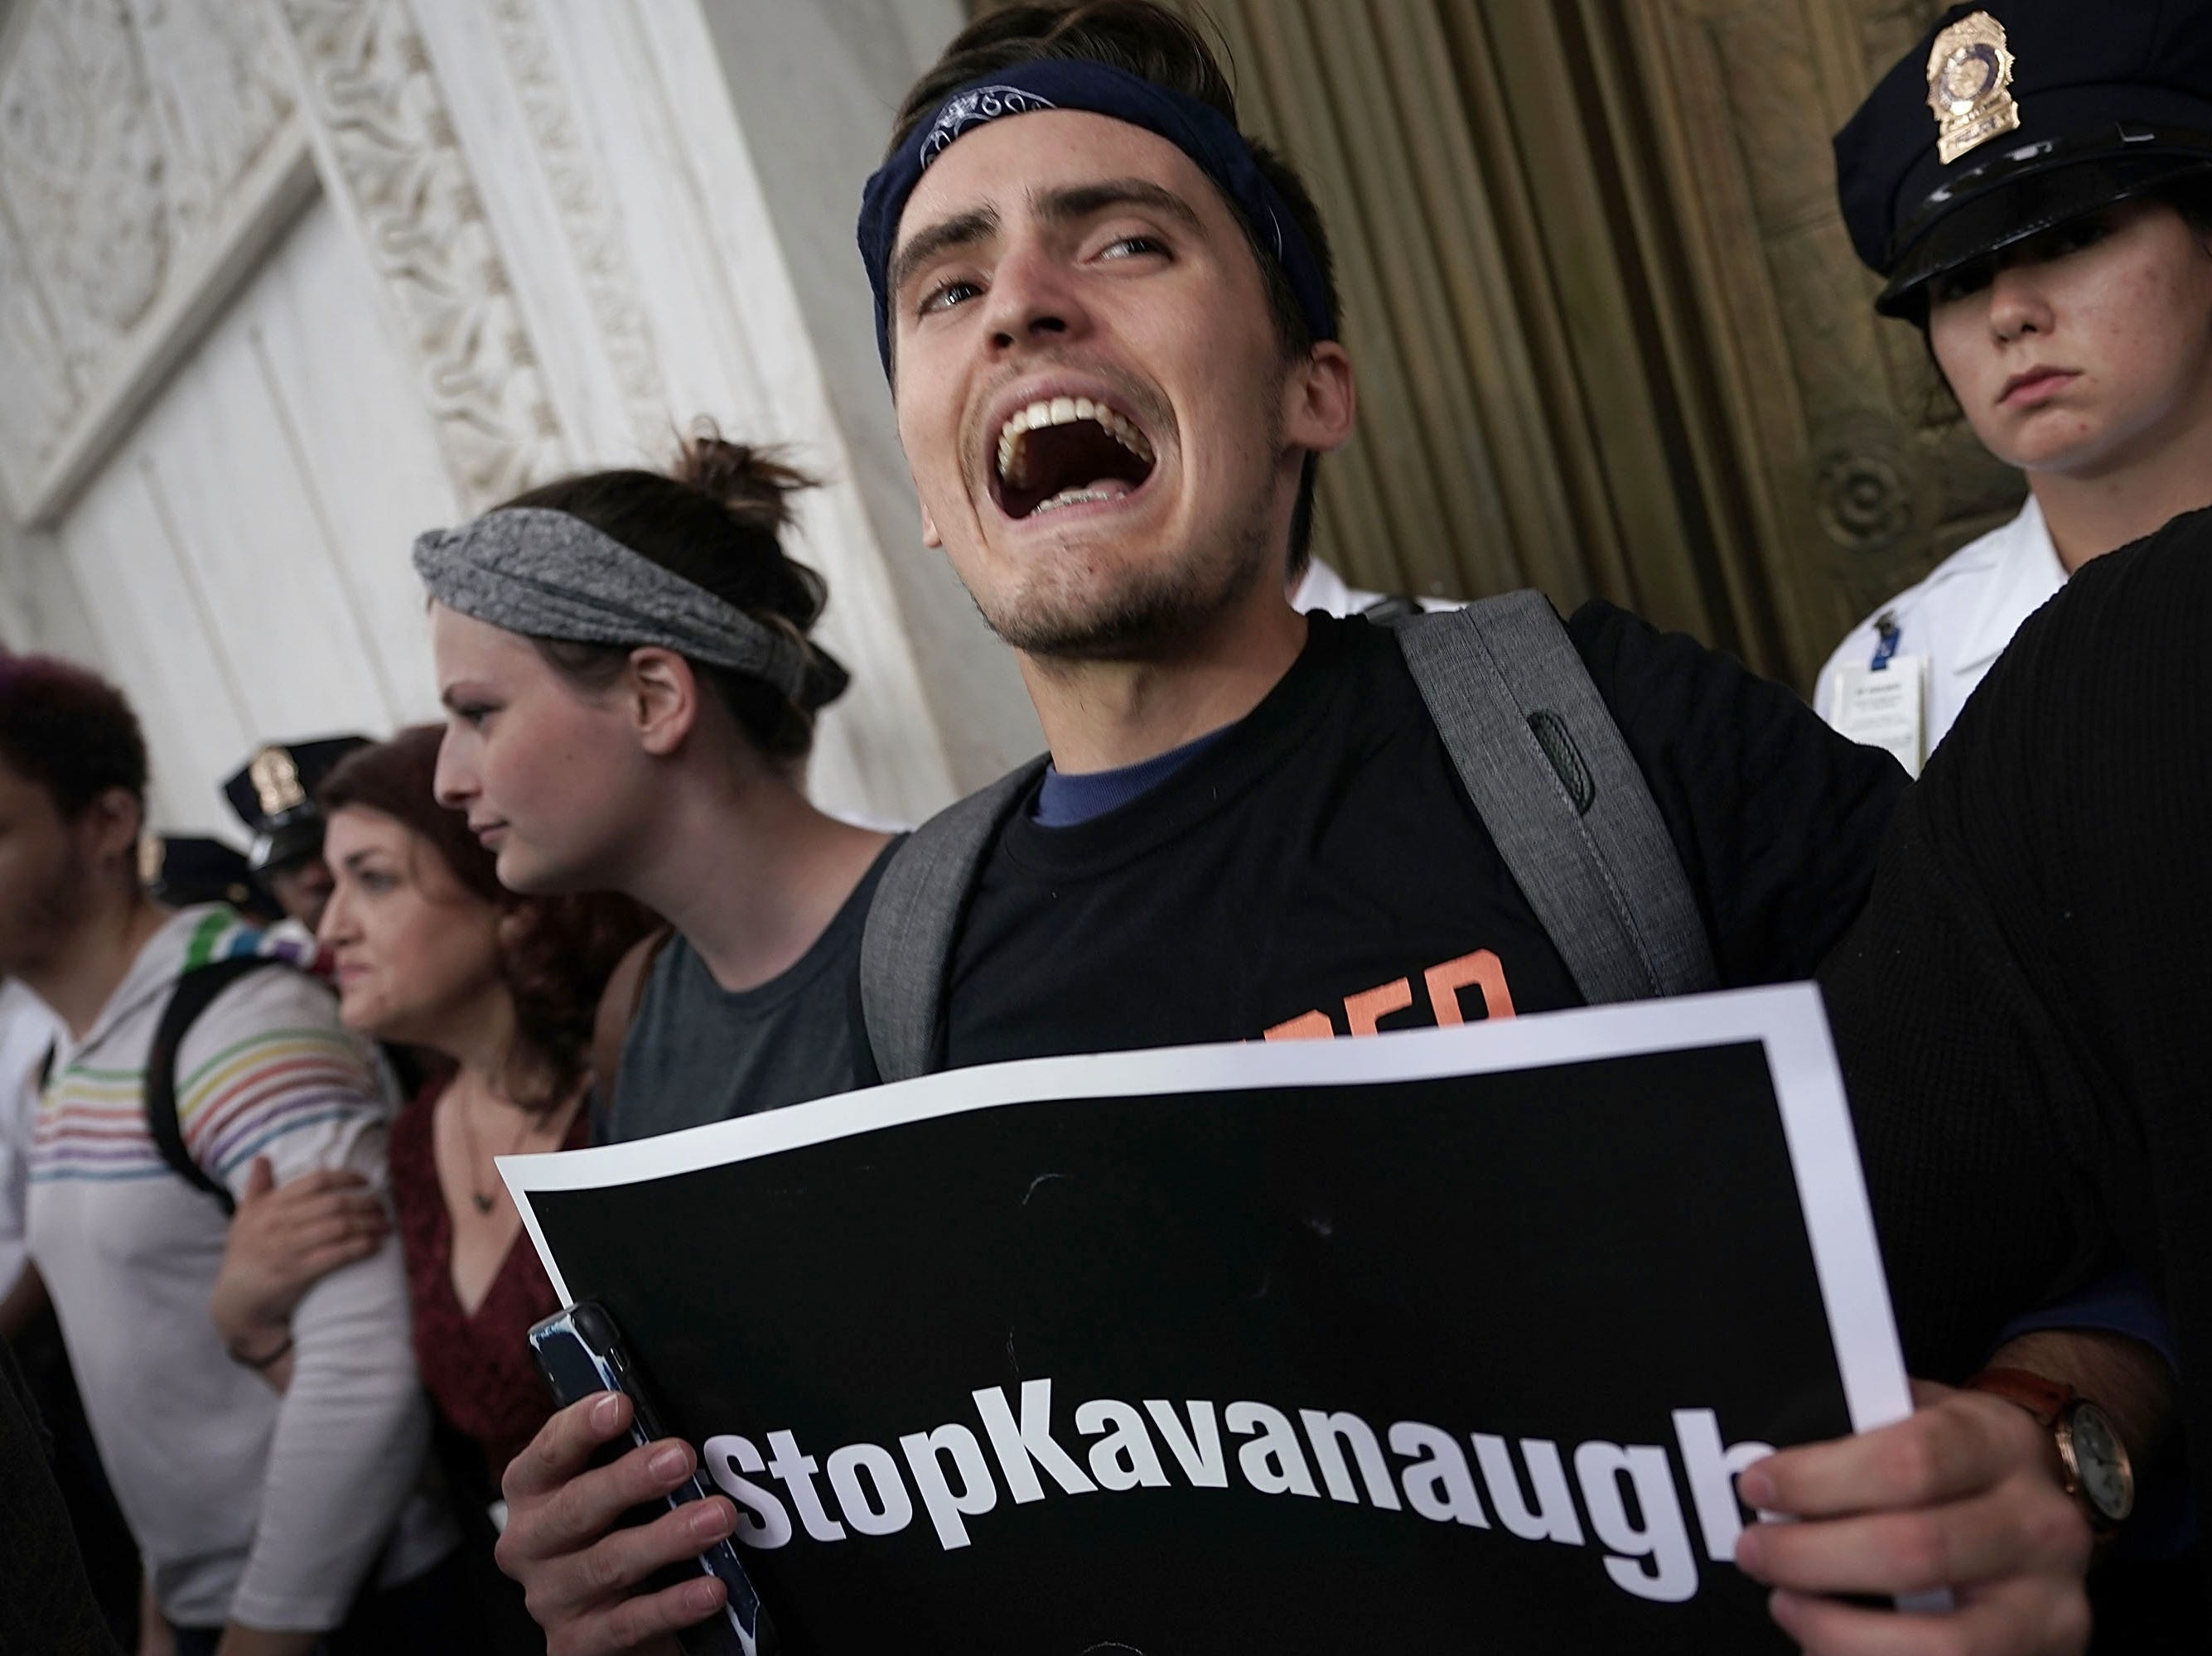 WASHINGTON, DC - OCTOBER 06:  Activists occupy the foyer of the U.S. Supreme Court to protest against the confirmation of Judge Brett Kavanaugh to the Supreme Court October 6, 2018 in Washington, DC. The Senate voted 50-48 to confirm Kavanaugh to replace retired Associate Justice Anthony Kennedy.  (Photo by Alex Wong/Getty Images)